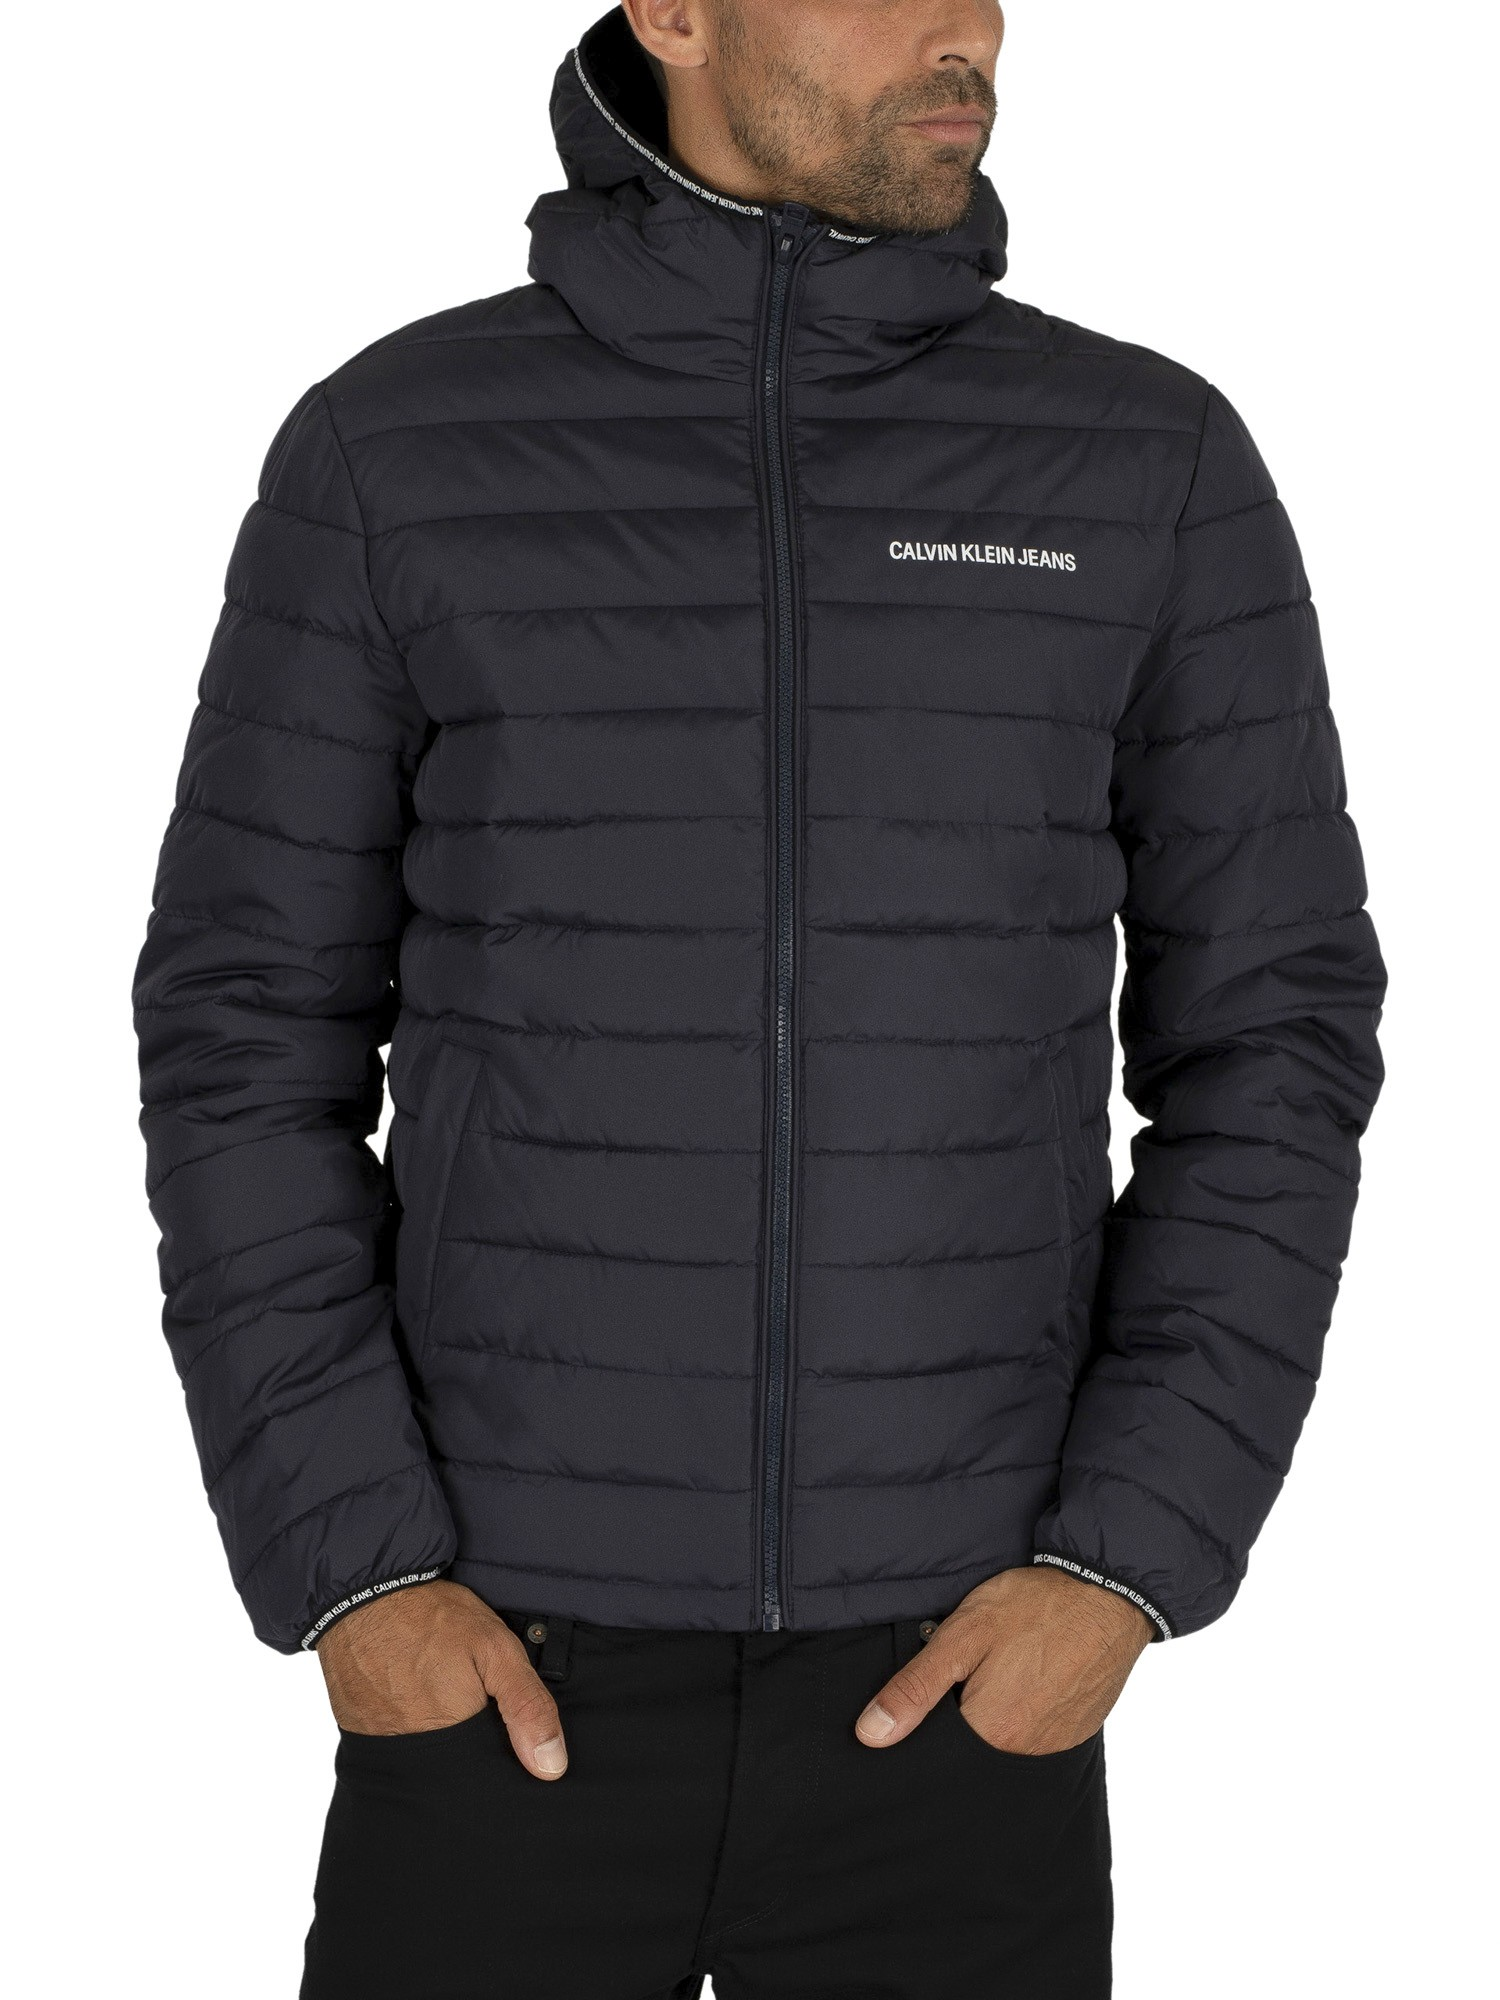 Calvin Klein Jeans Padded Jacket Night SkyBlack